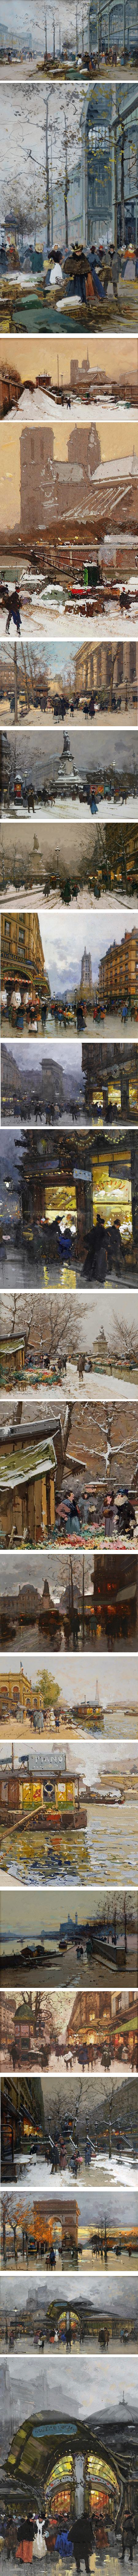 Eugene Galien Laloue, belle epoch paintings of Paris in gouache